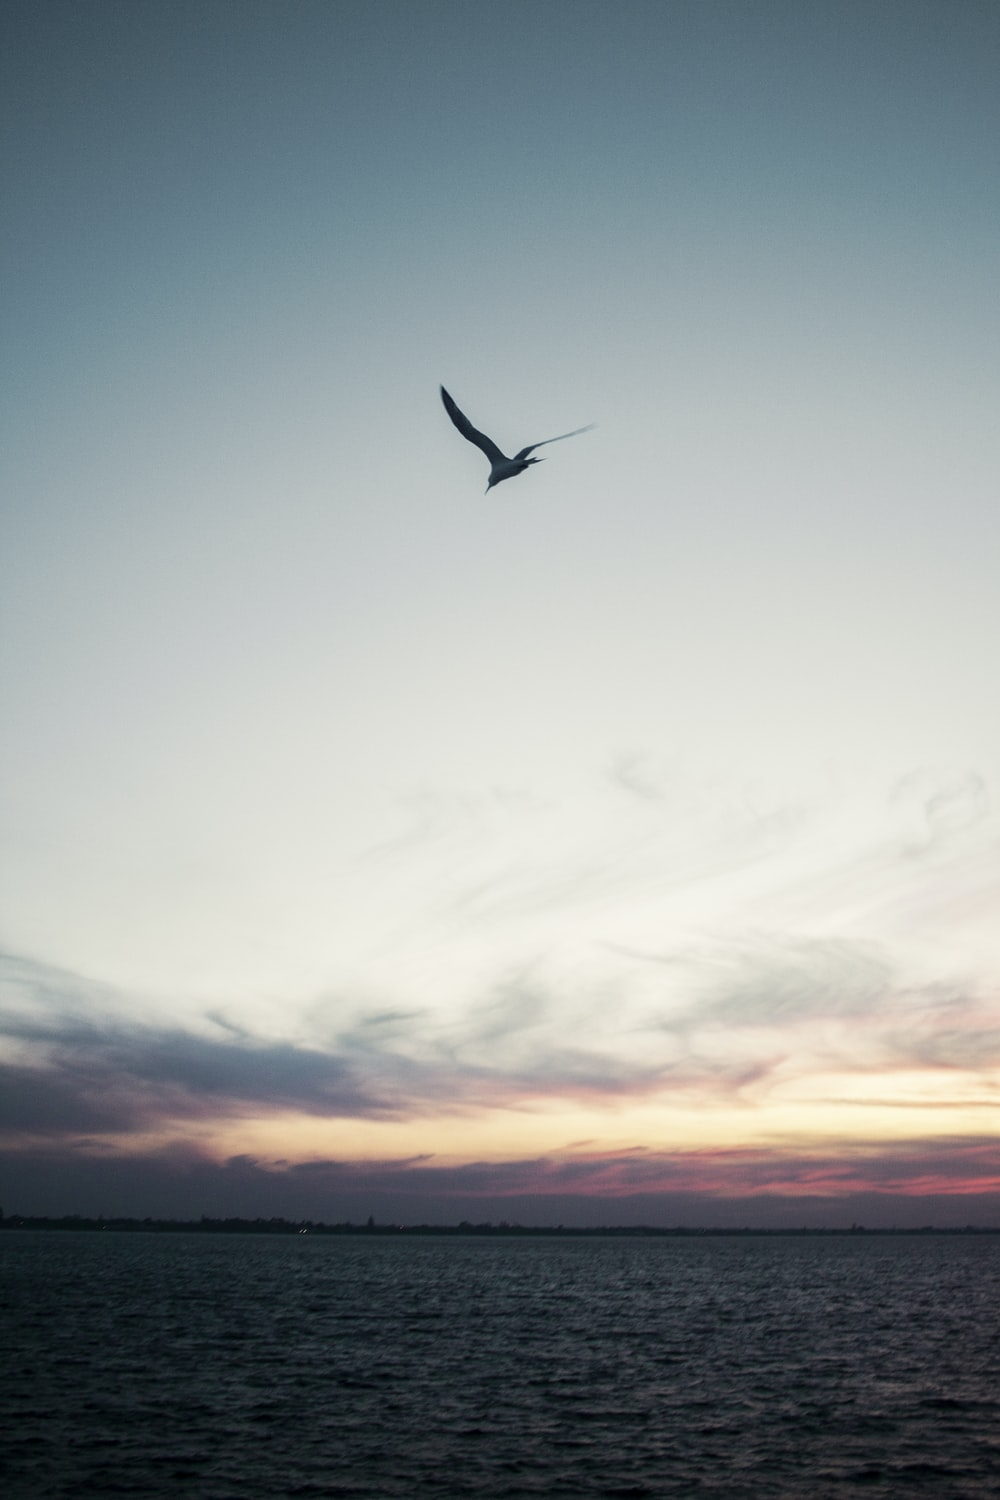 silhouette of bird flying above sea during golden hour